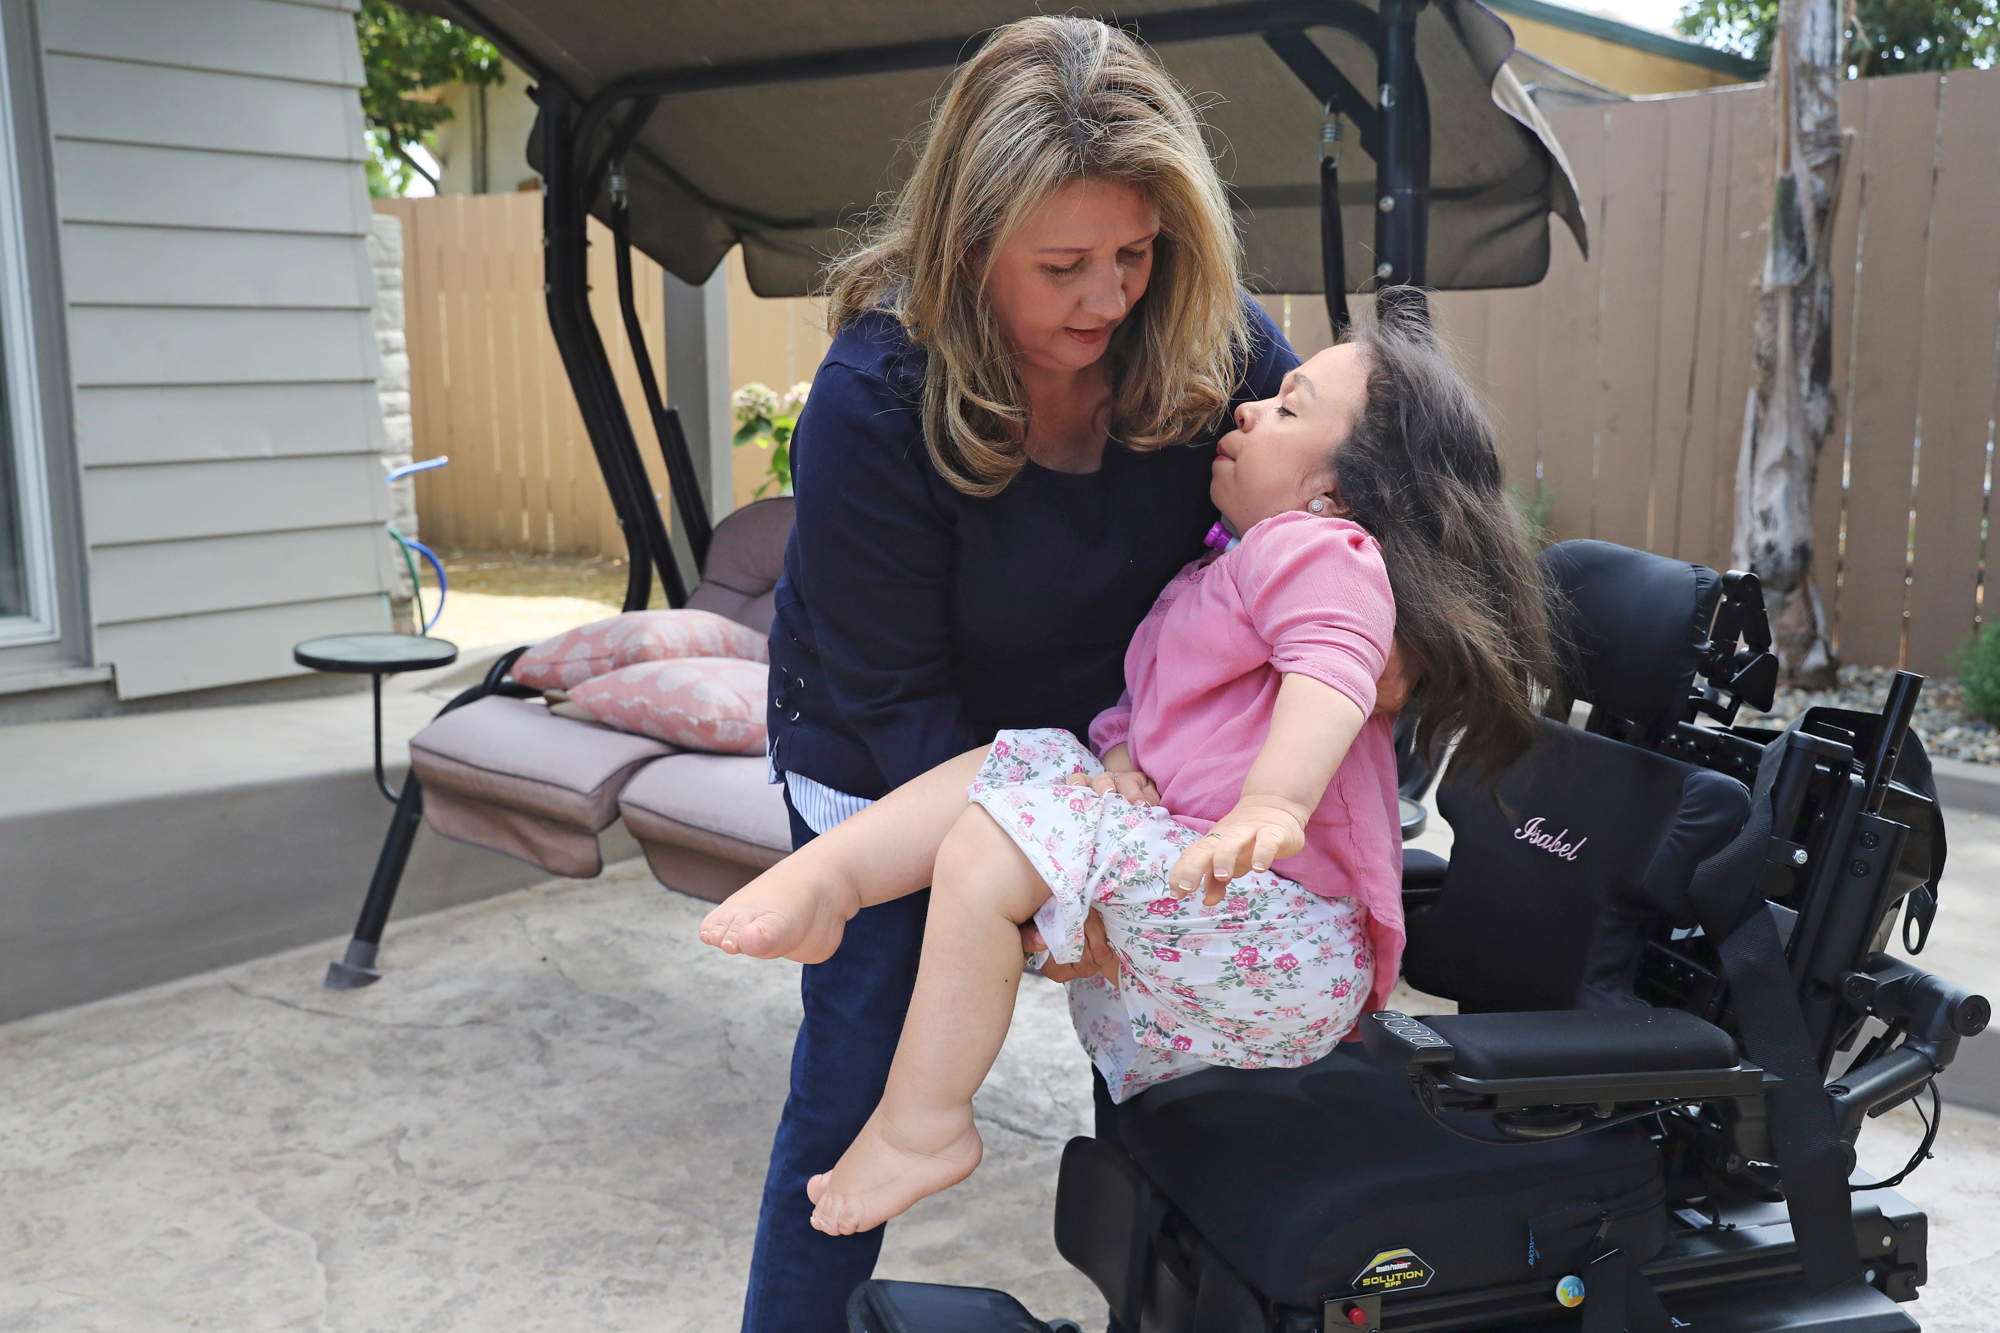 Karla Bueso lifts her daughter, Maria Isabel Bueso, 24, back into her wheelchair at home in Concord, Calif., Aug. 28, 2019. (Jim Wilson/The New York Times)